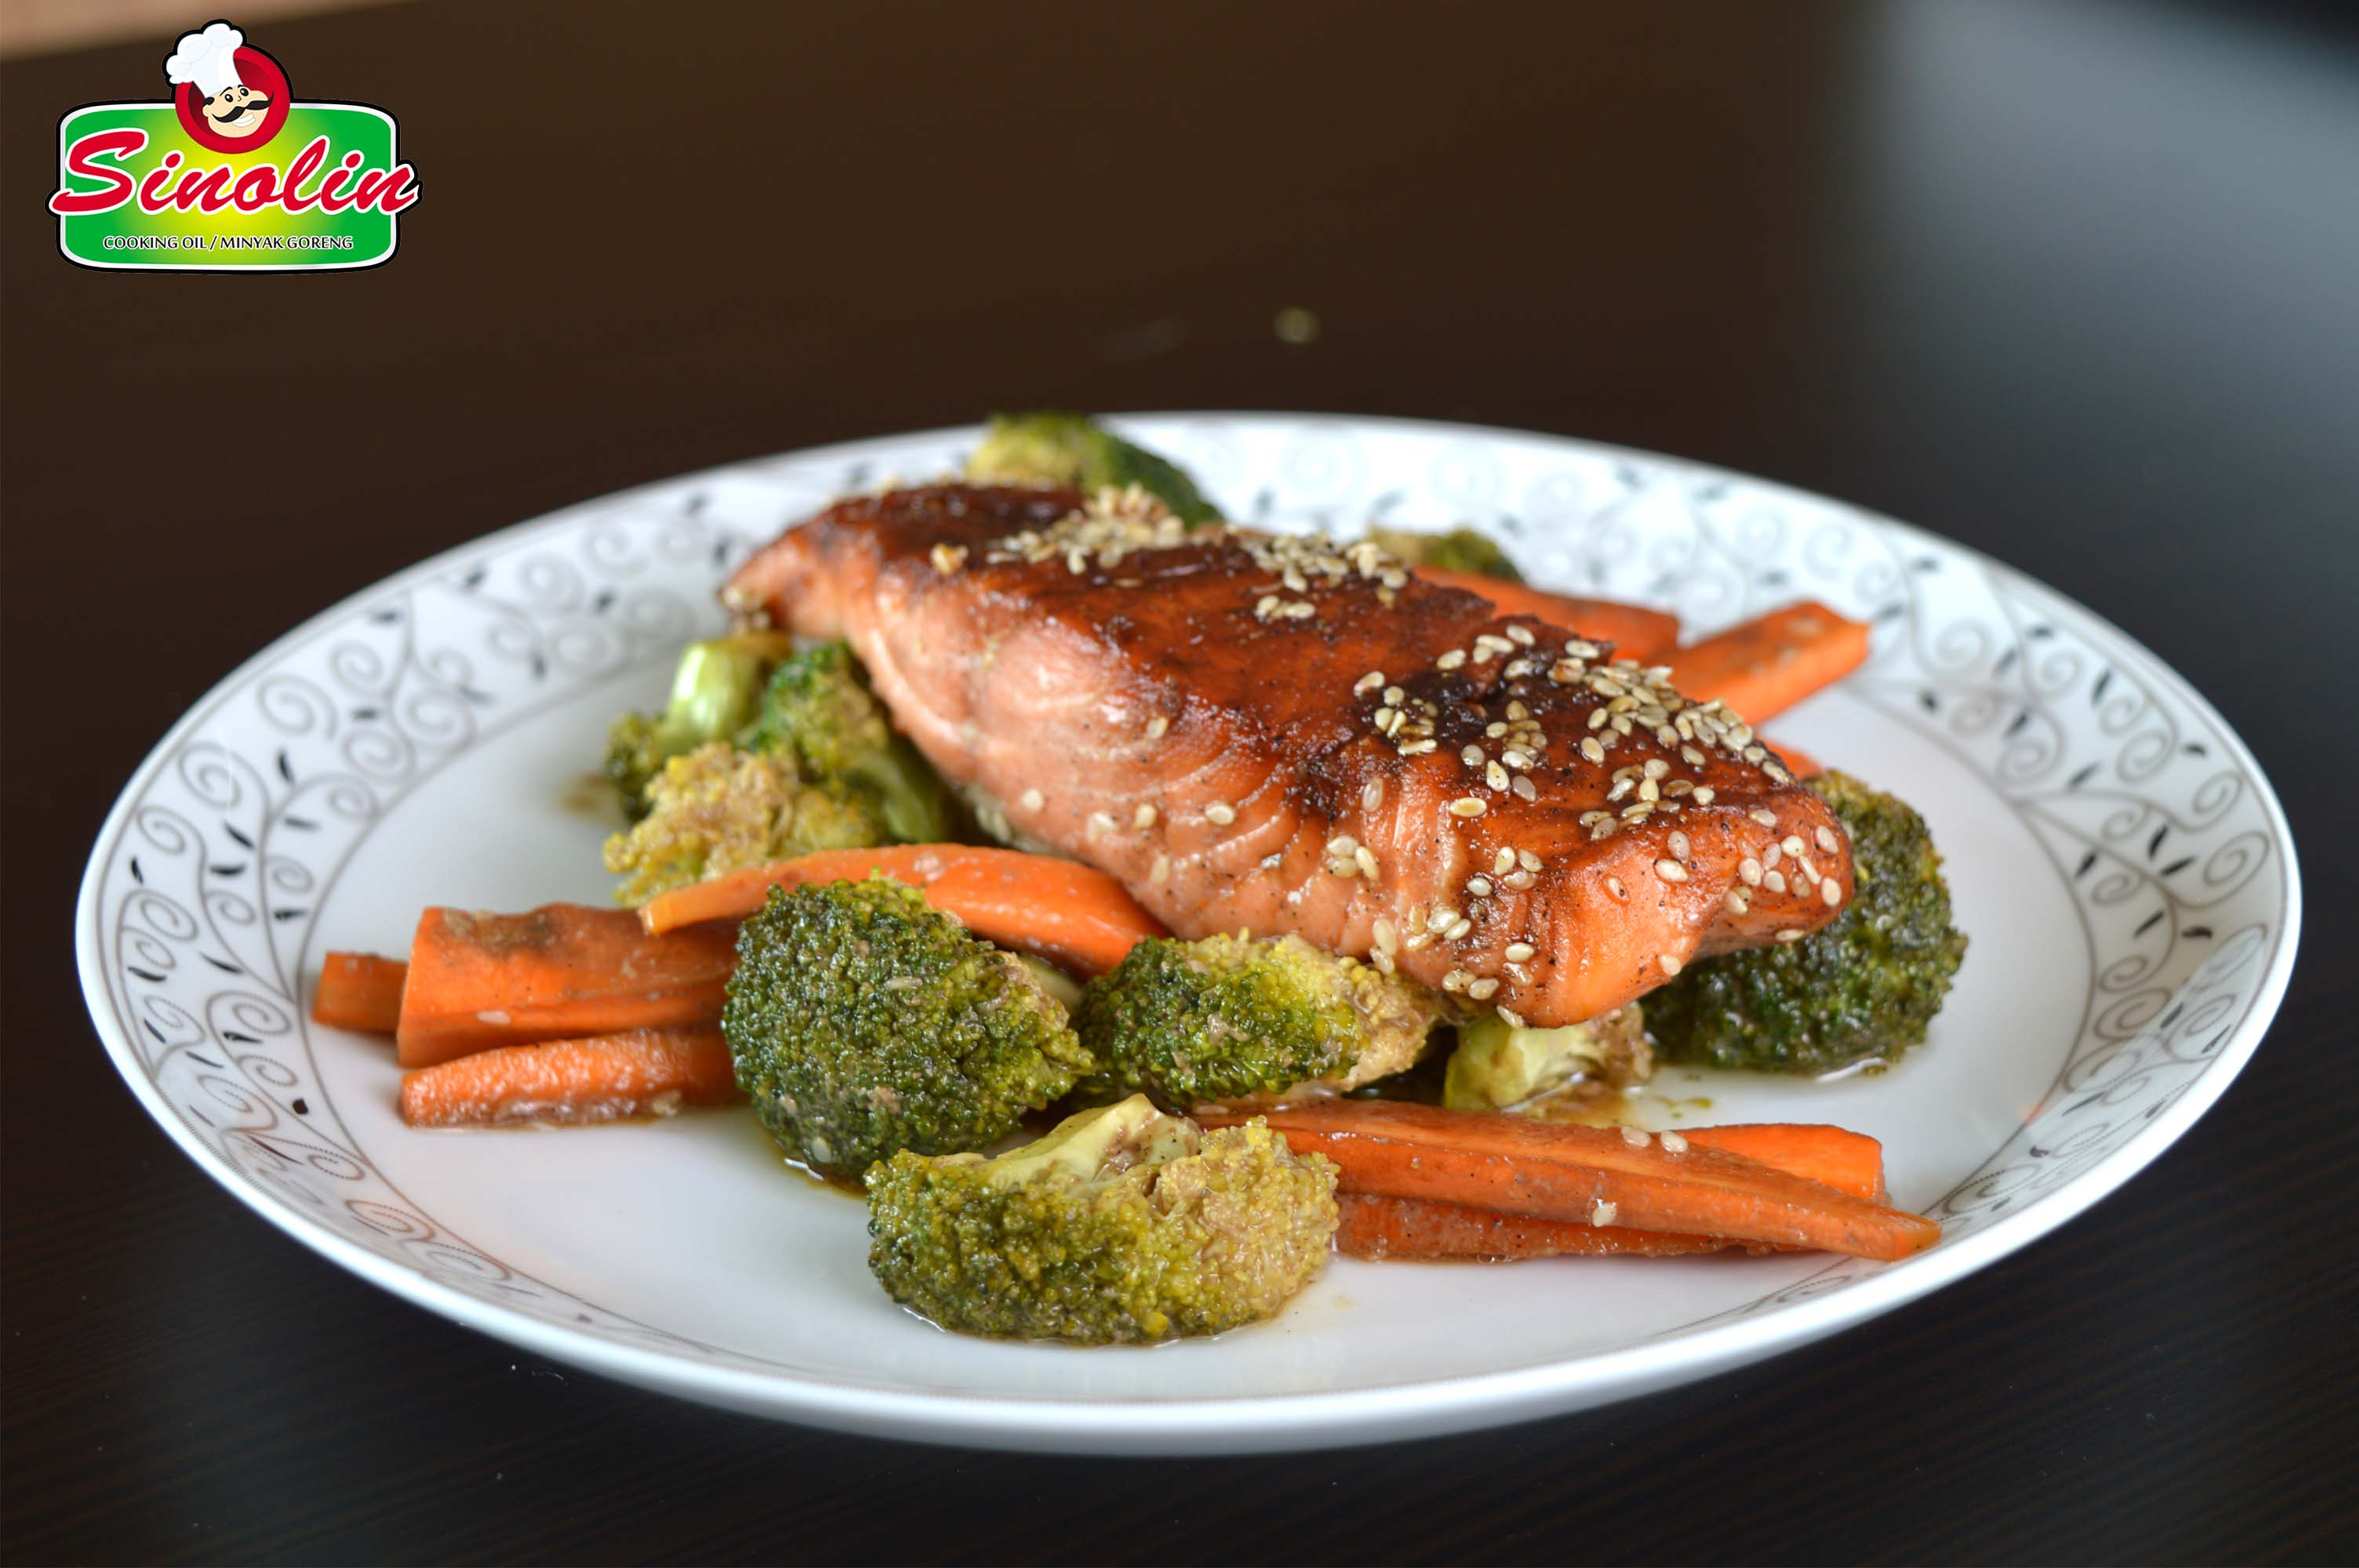 Teriyaki Salmon by Dapur Sinolin